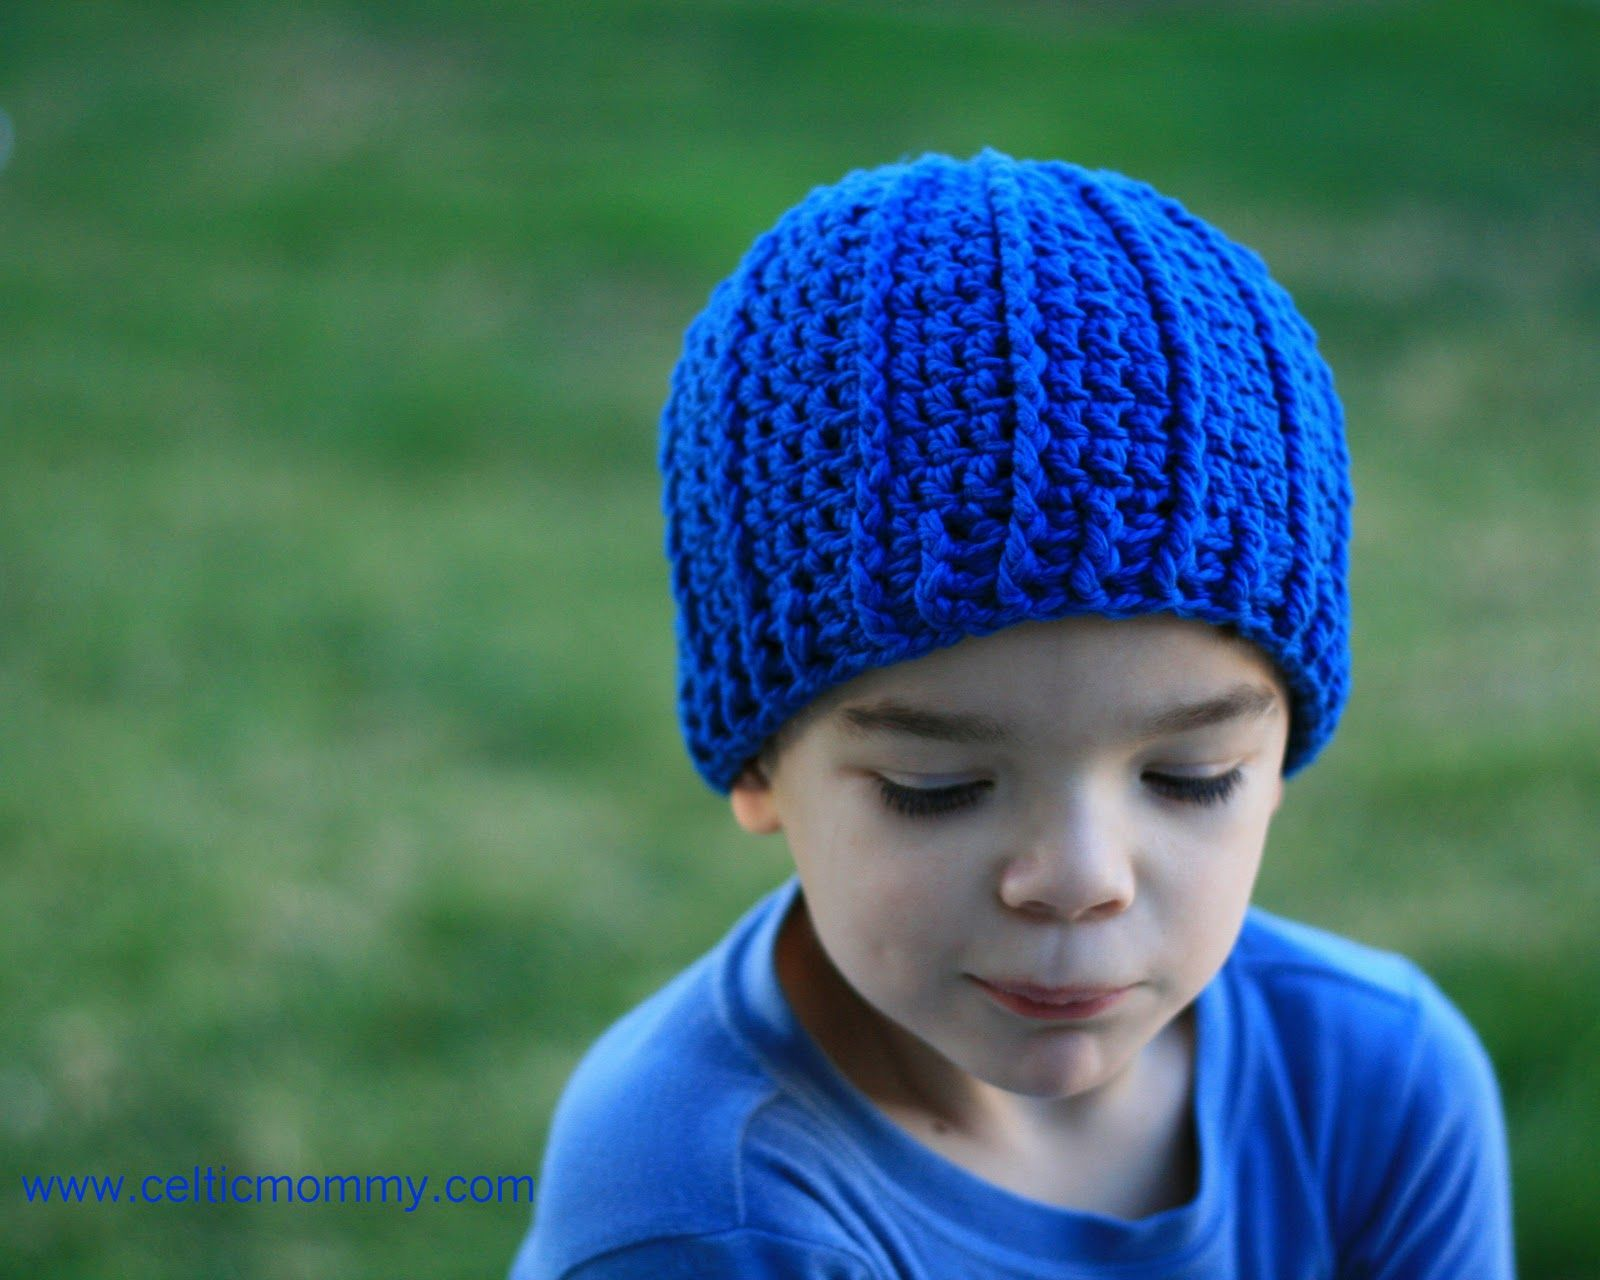 Boy crochet hat patterns free by heather schott boy crochet hat patterns free by heather schott celticmommy on bankloansurffo Choice Image